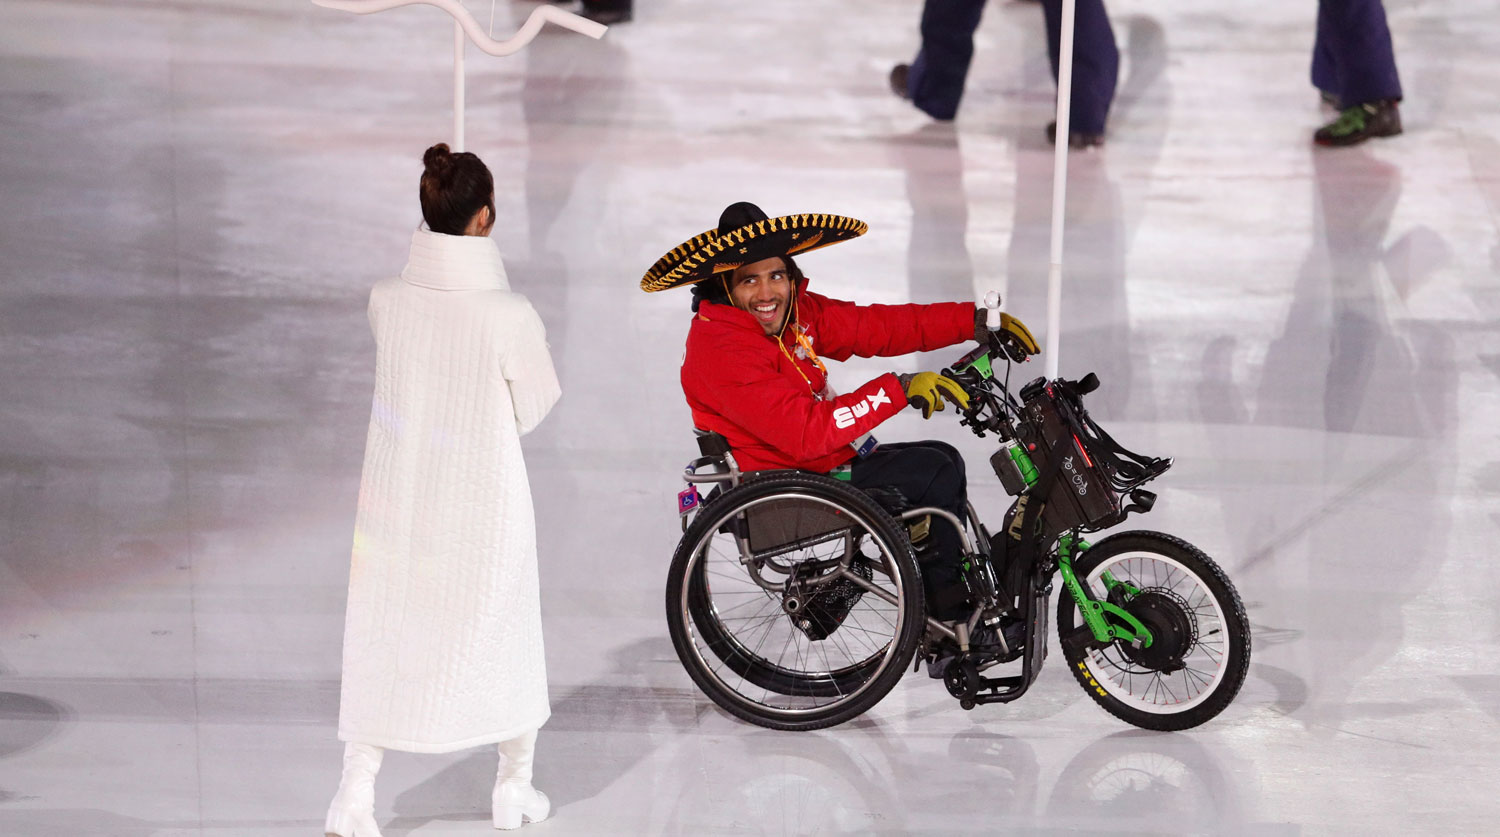 Pyeongchang 2018 Winter Paralympics - Opening ceremony - Pyeongchang Olympic Stadium - Pyeongchang, South Korea - March 9, 2018 - Arly Aristides Velasquez Penaloza of Mexico carries the national flag during the opening ceremony. REUTERS/Paul Hanna - RC17F3AC04B0